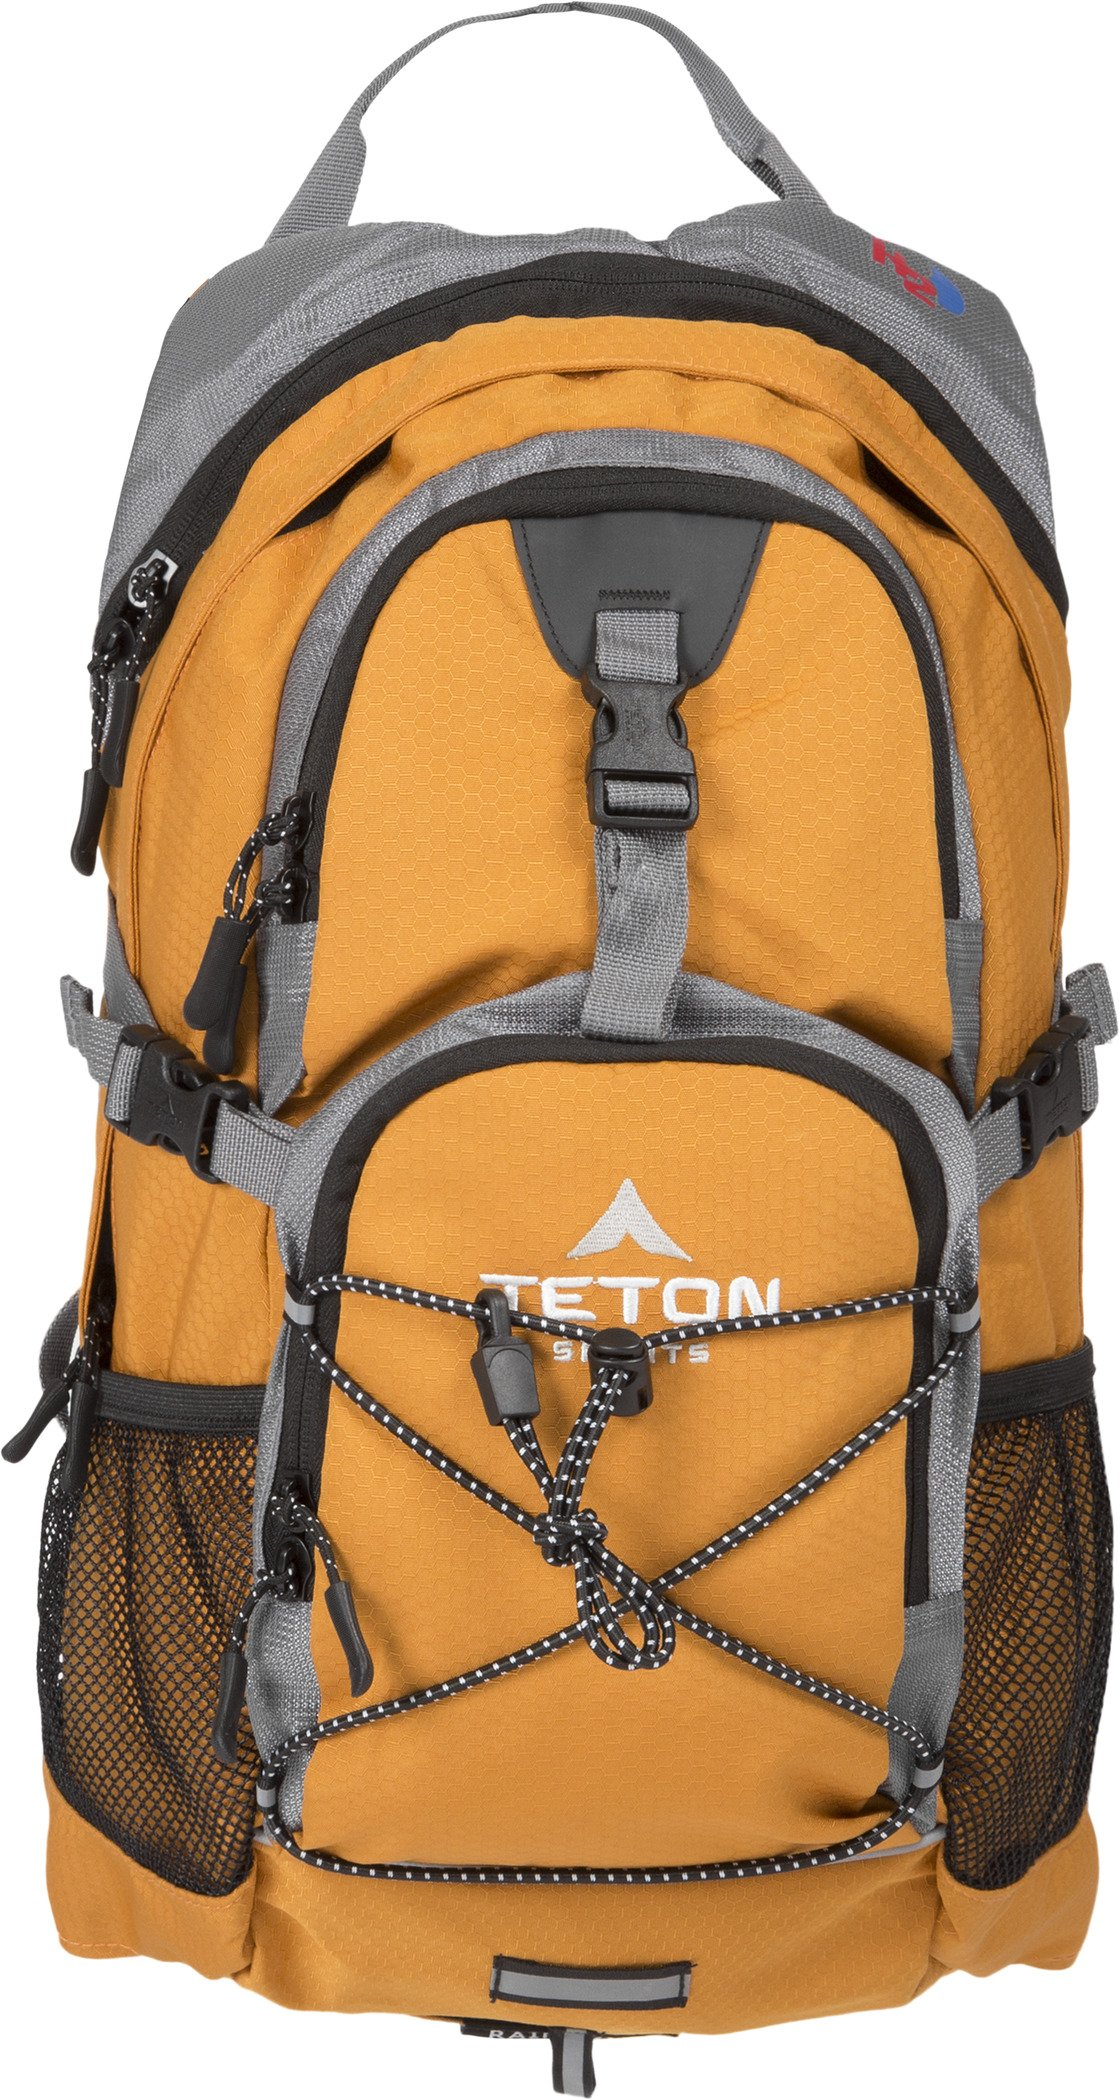 TETON Sports Oasis 1100 Hydration Pack   Free 2-Liter Hydration Bladder   Backpack design great for Hiking, Running, Cycling, and Climbing   Orange by TETON Sports